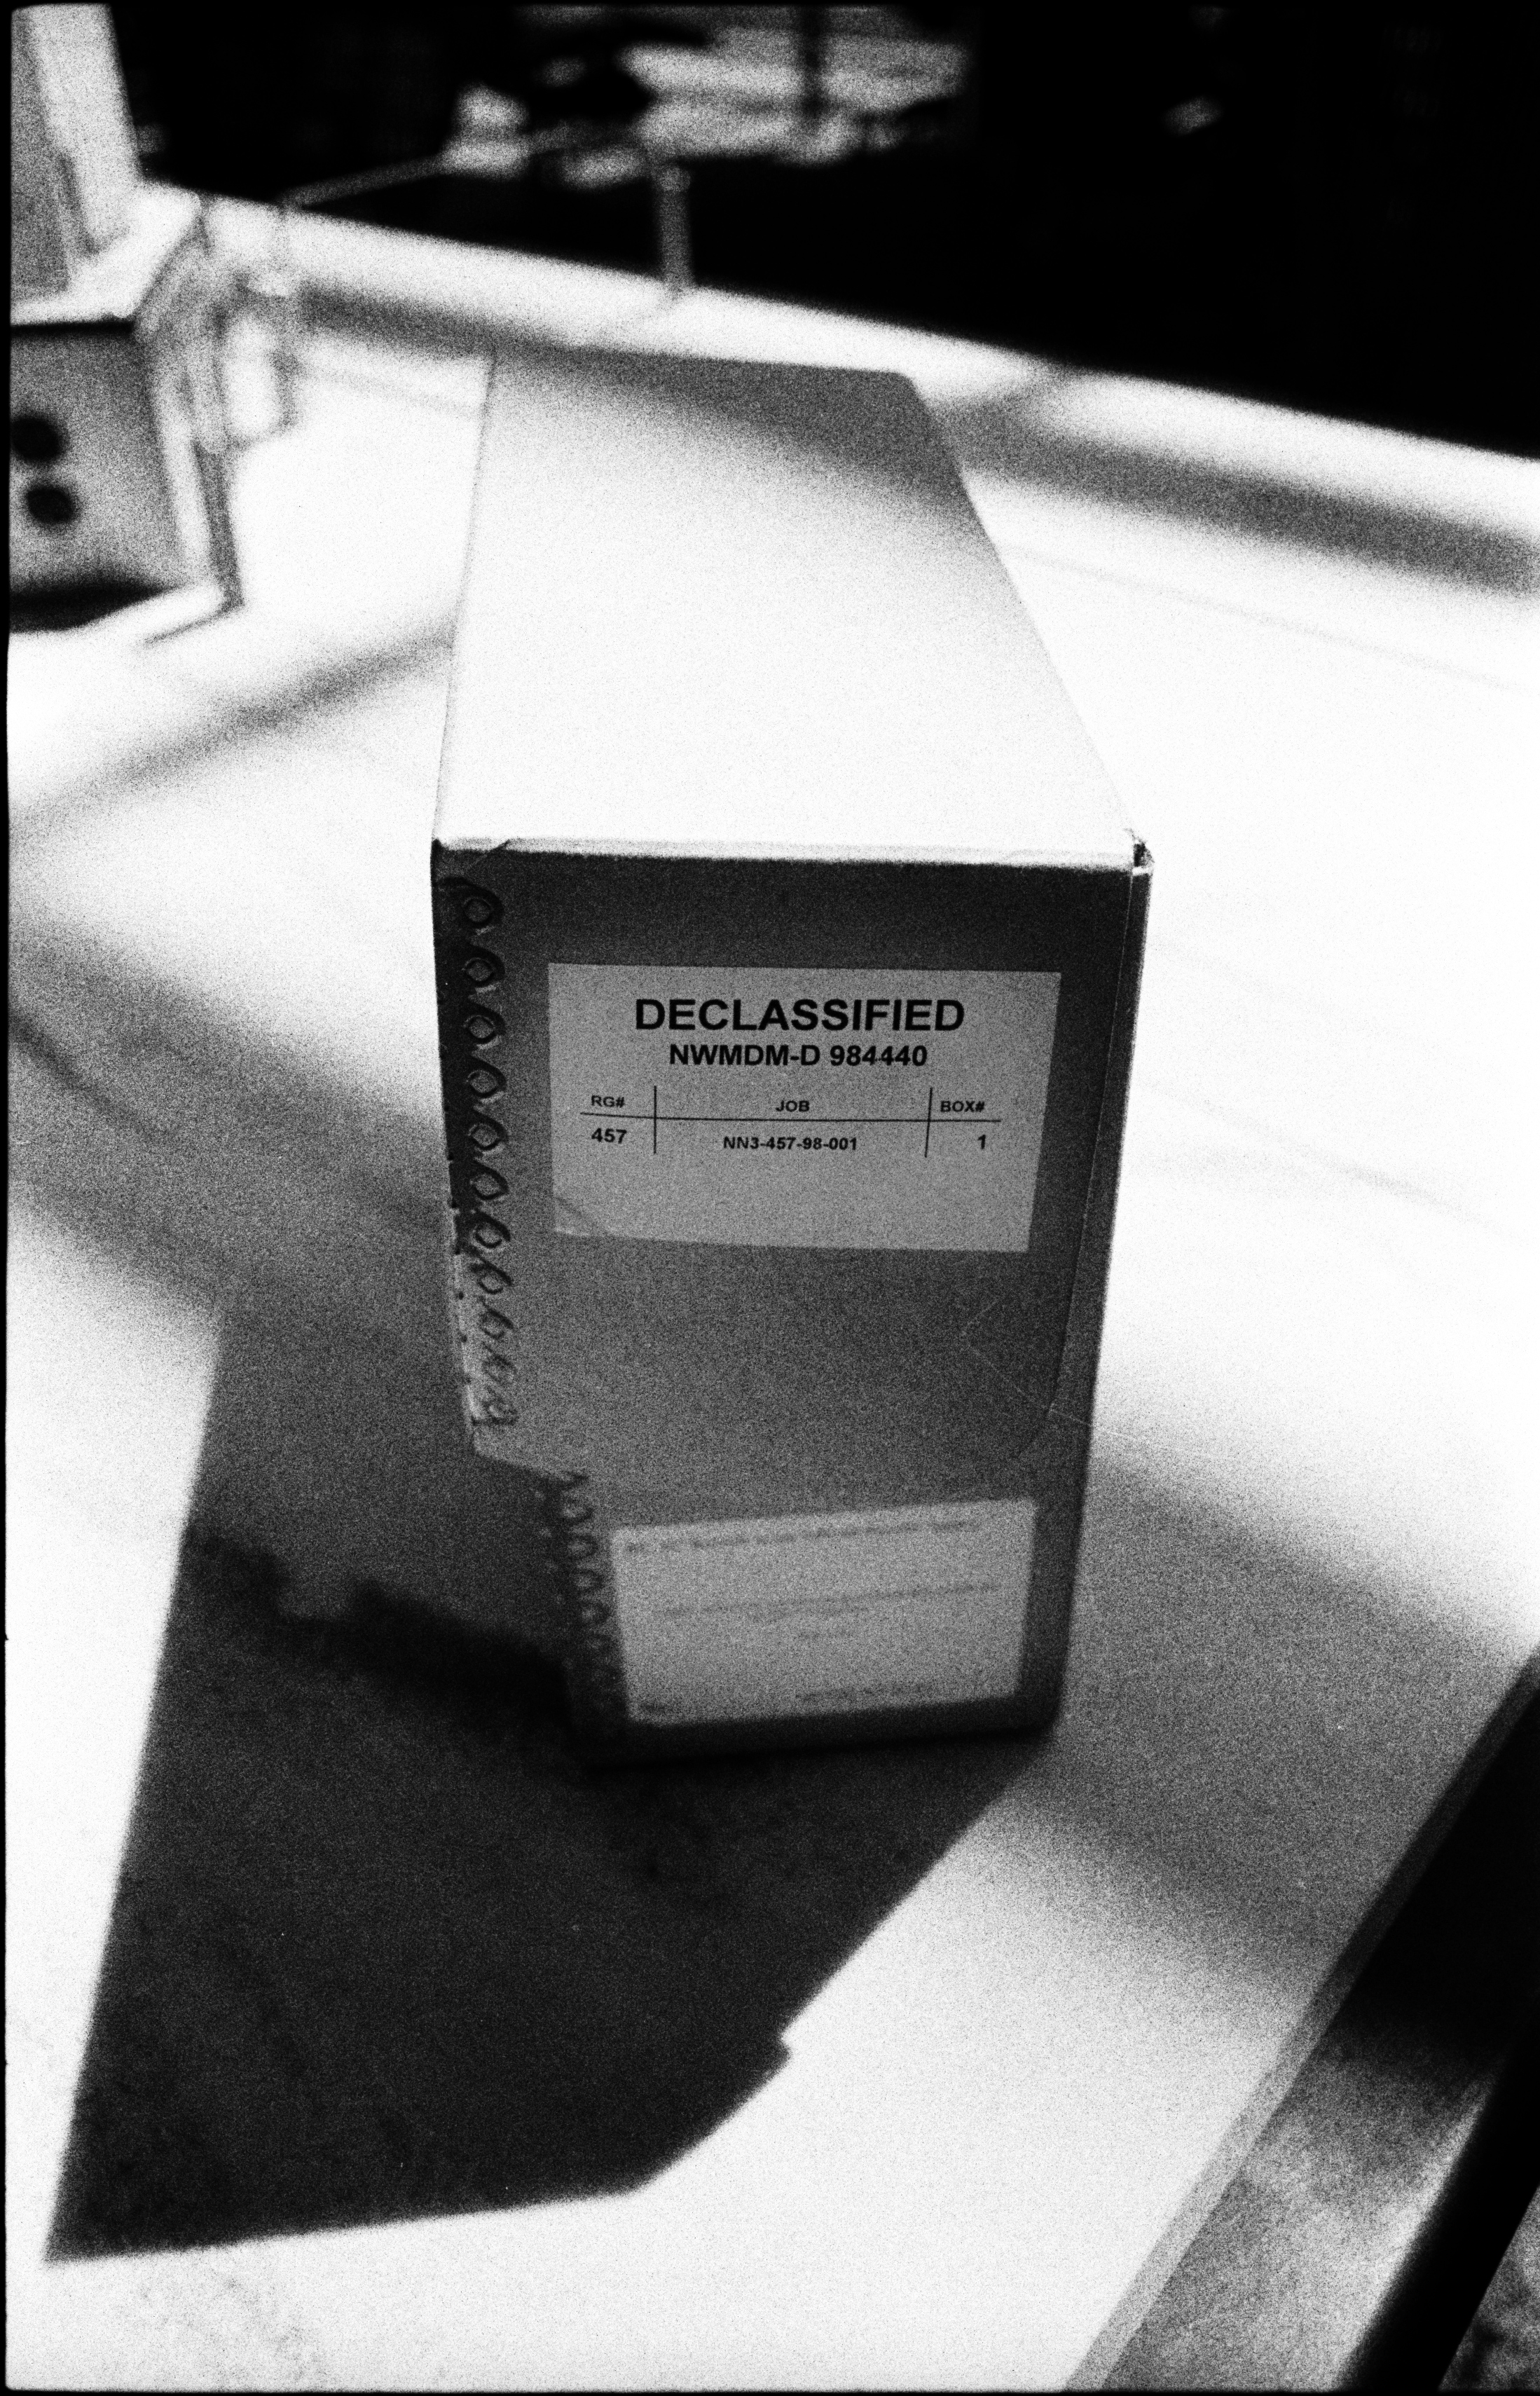 A box of declassified documents